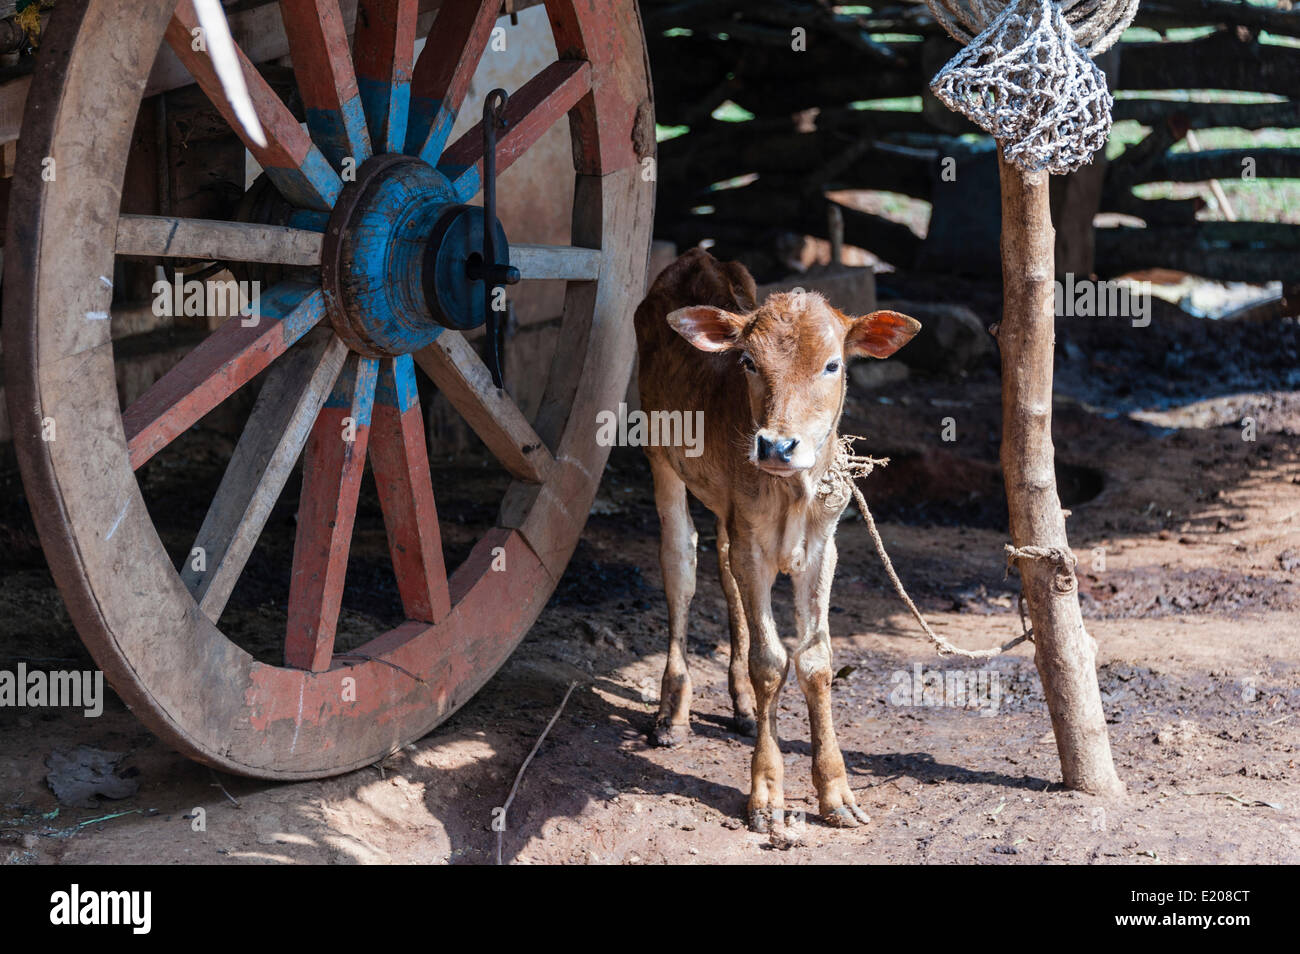 Calf, tied up, India - Stock Image